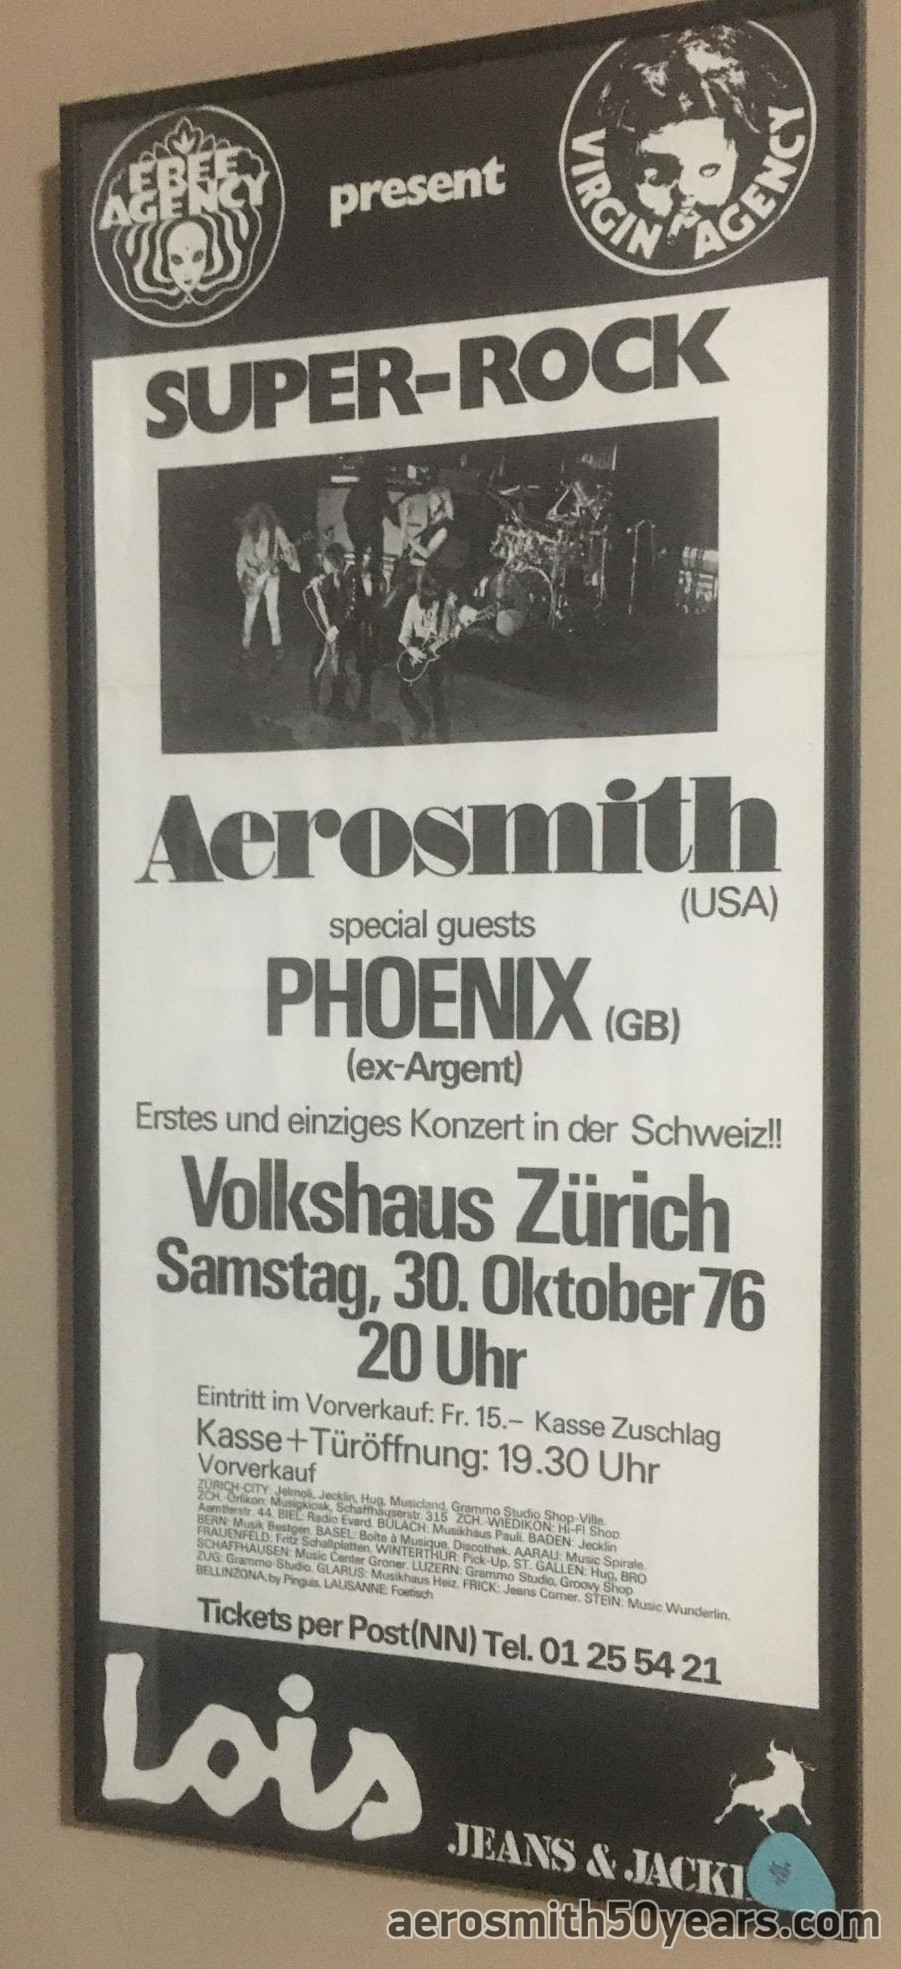 October 30th, 1976 Volkshaus, Zurich, Switzerland Concert Poster. From The Collection Of Someone Who Was There! (Thanks for sharing!)